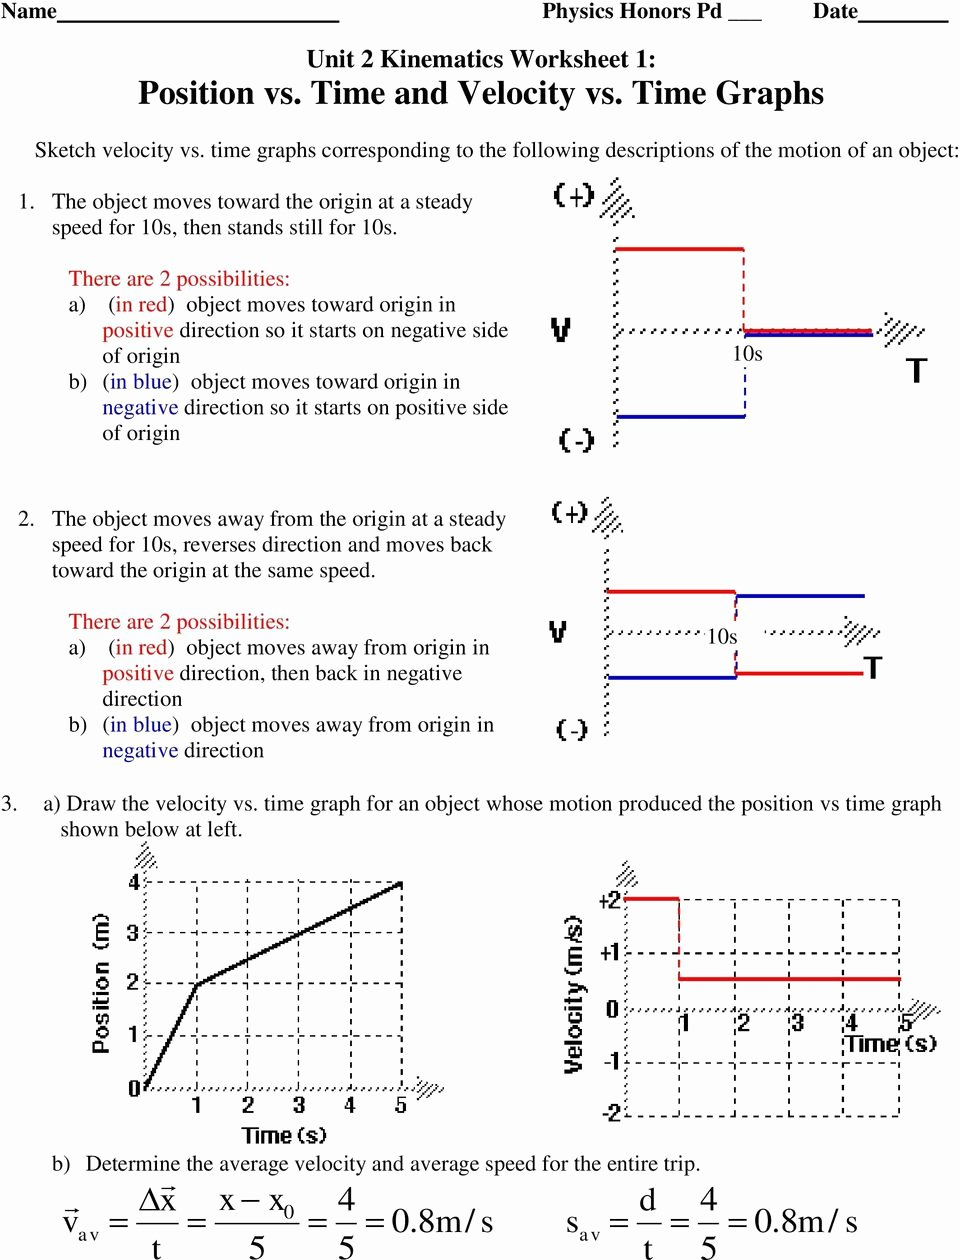 Velocity Time Graph Worksheet Answers Elegant Unit 2 Kinematics Worksheet 1 Position Vs Time and